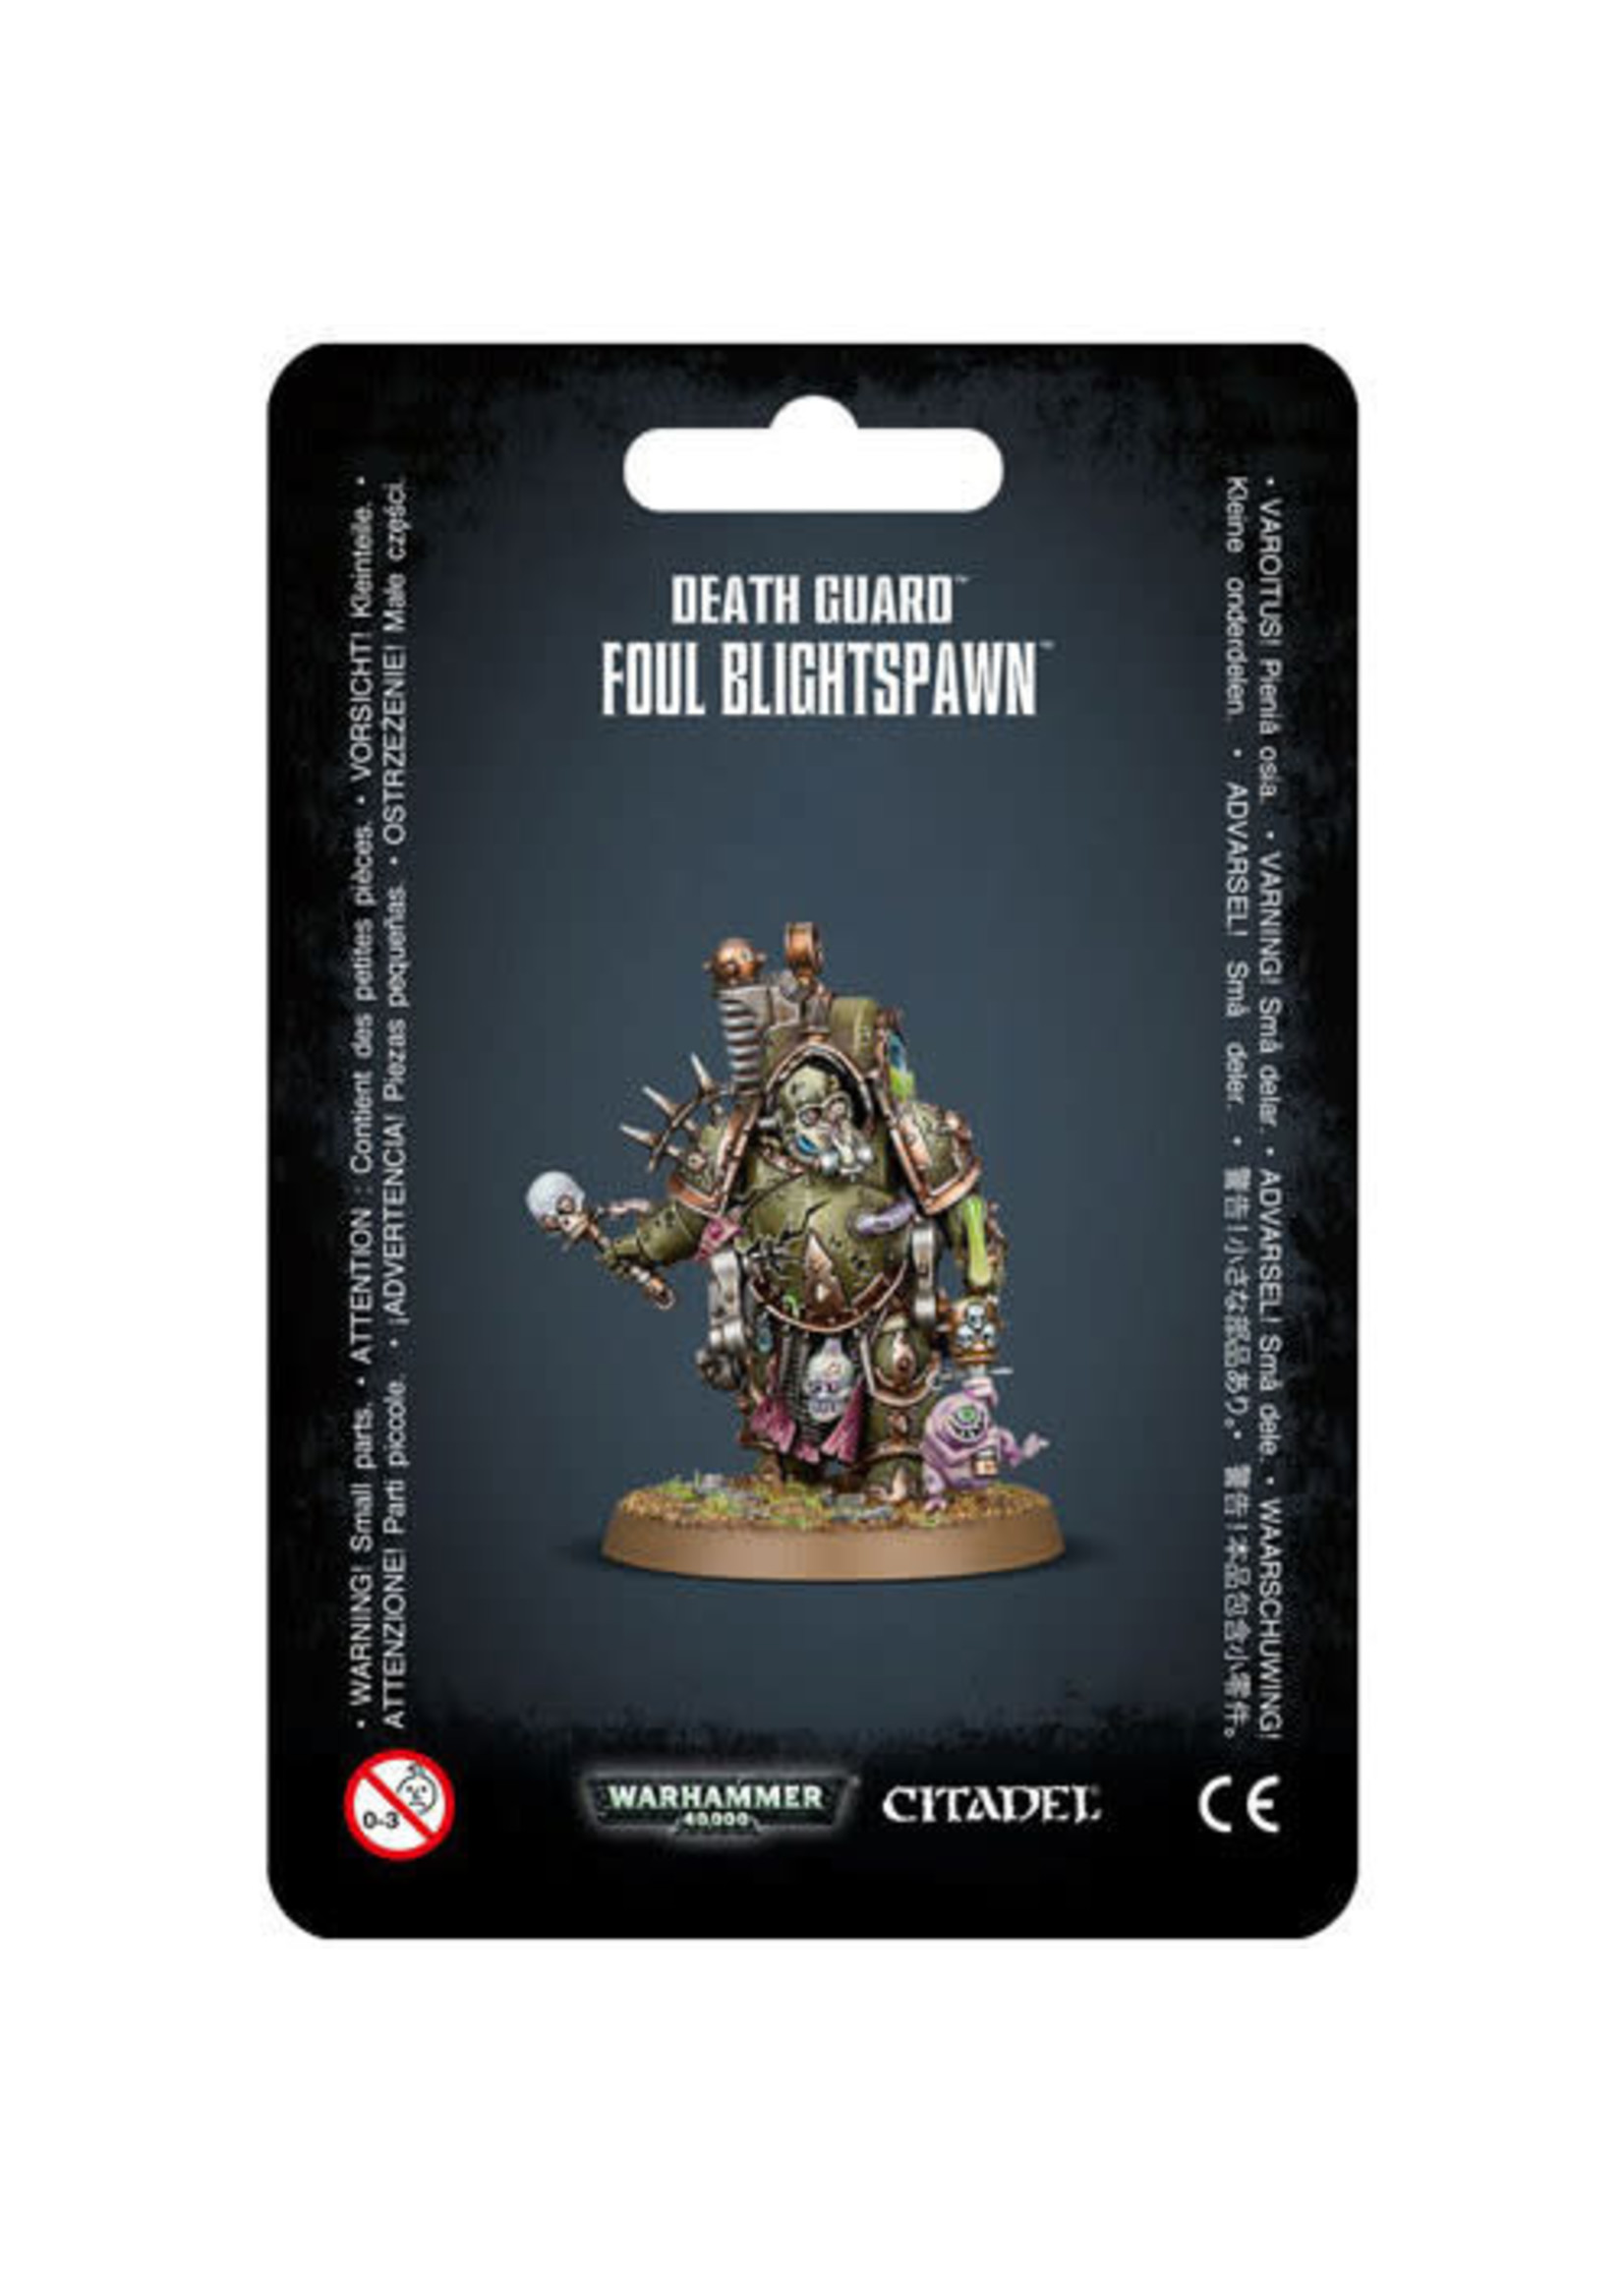 Death Guard Foul Blightspawn (40K)